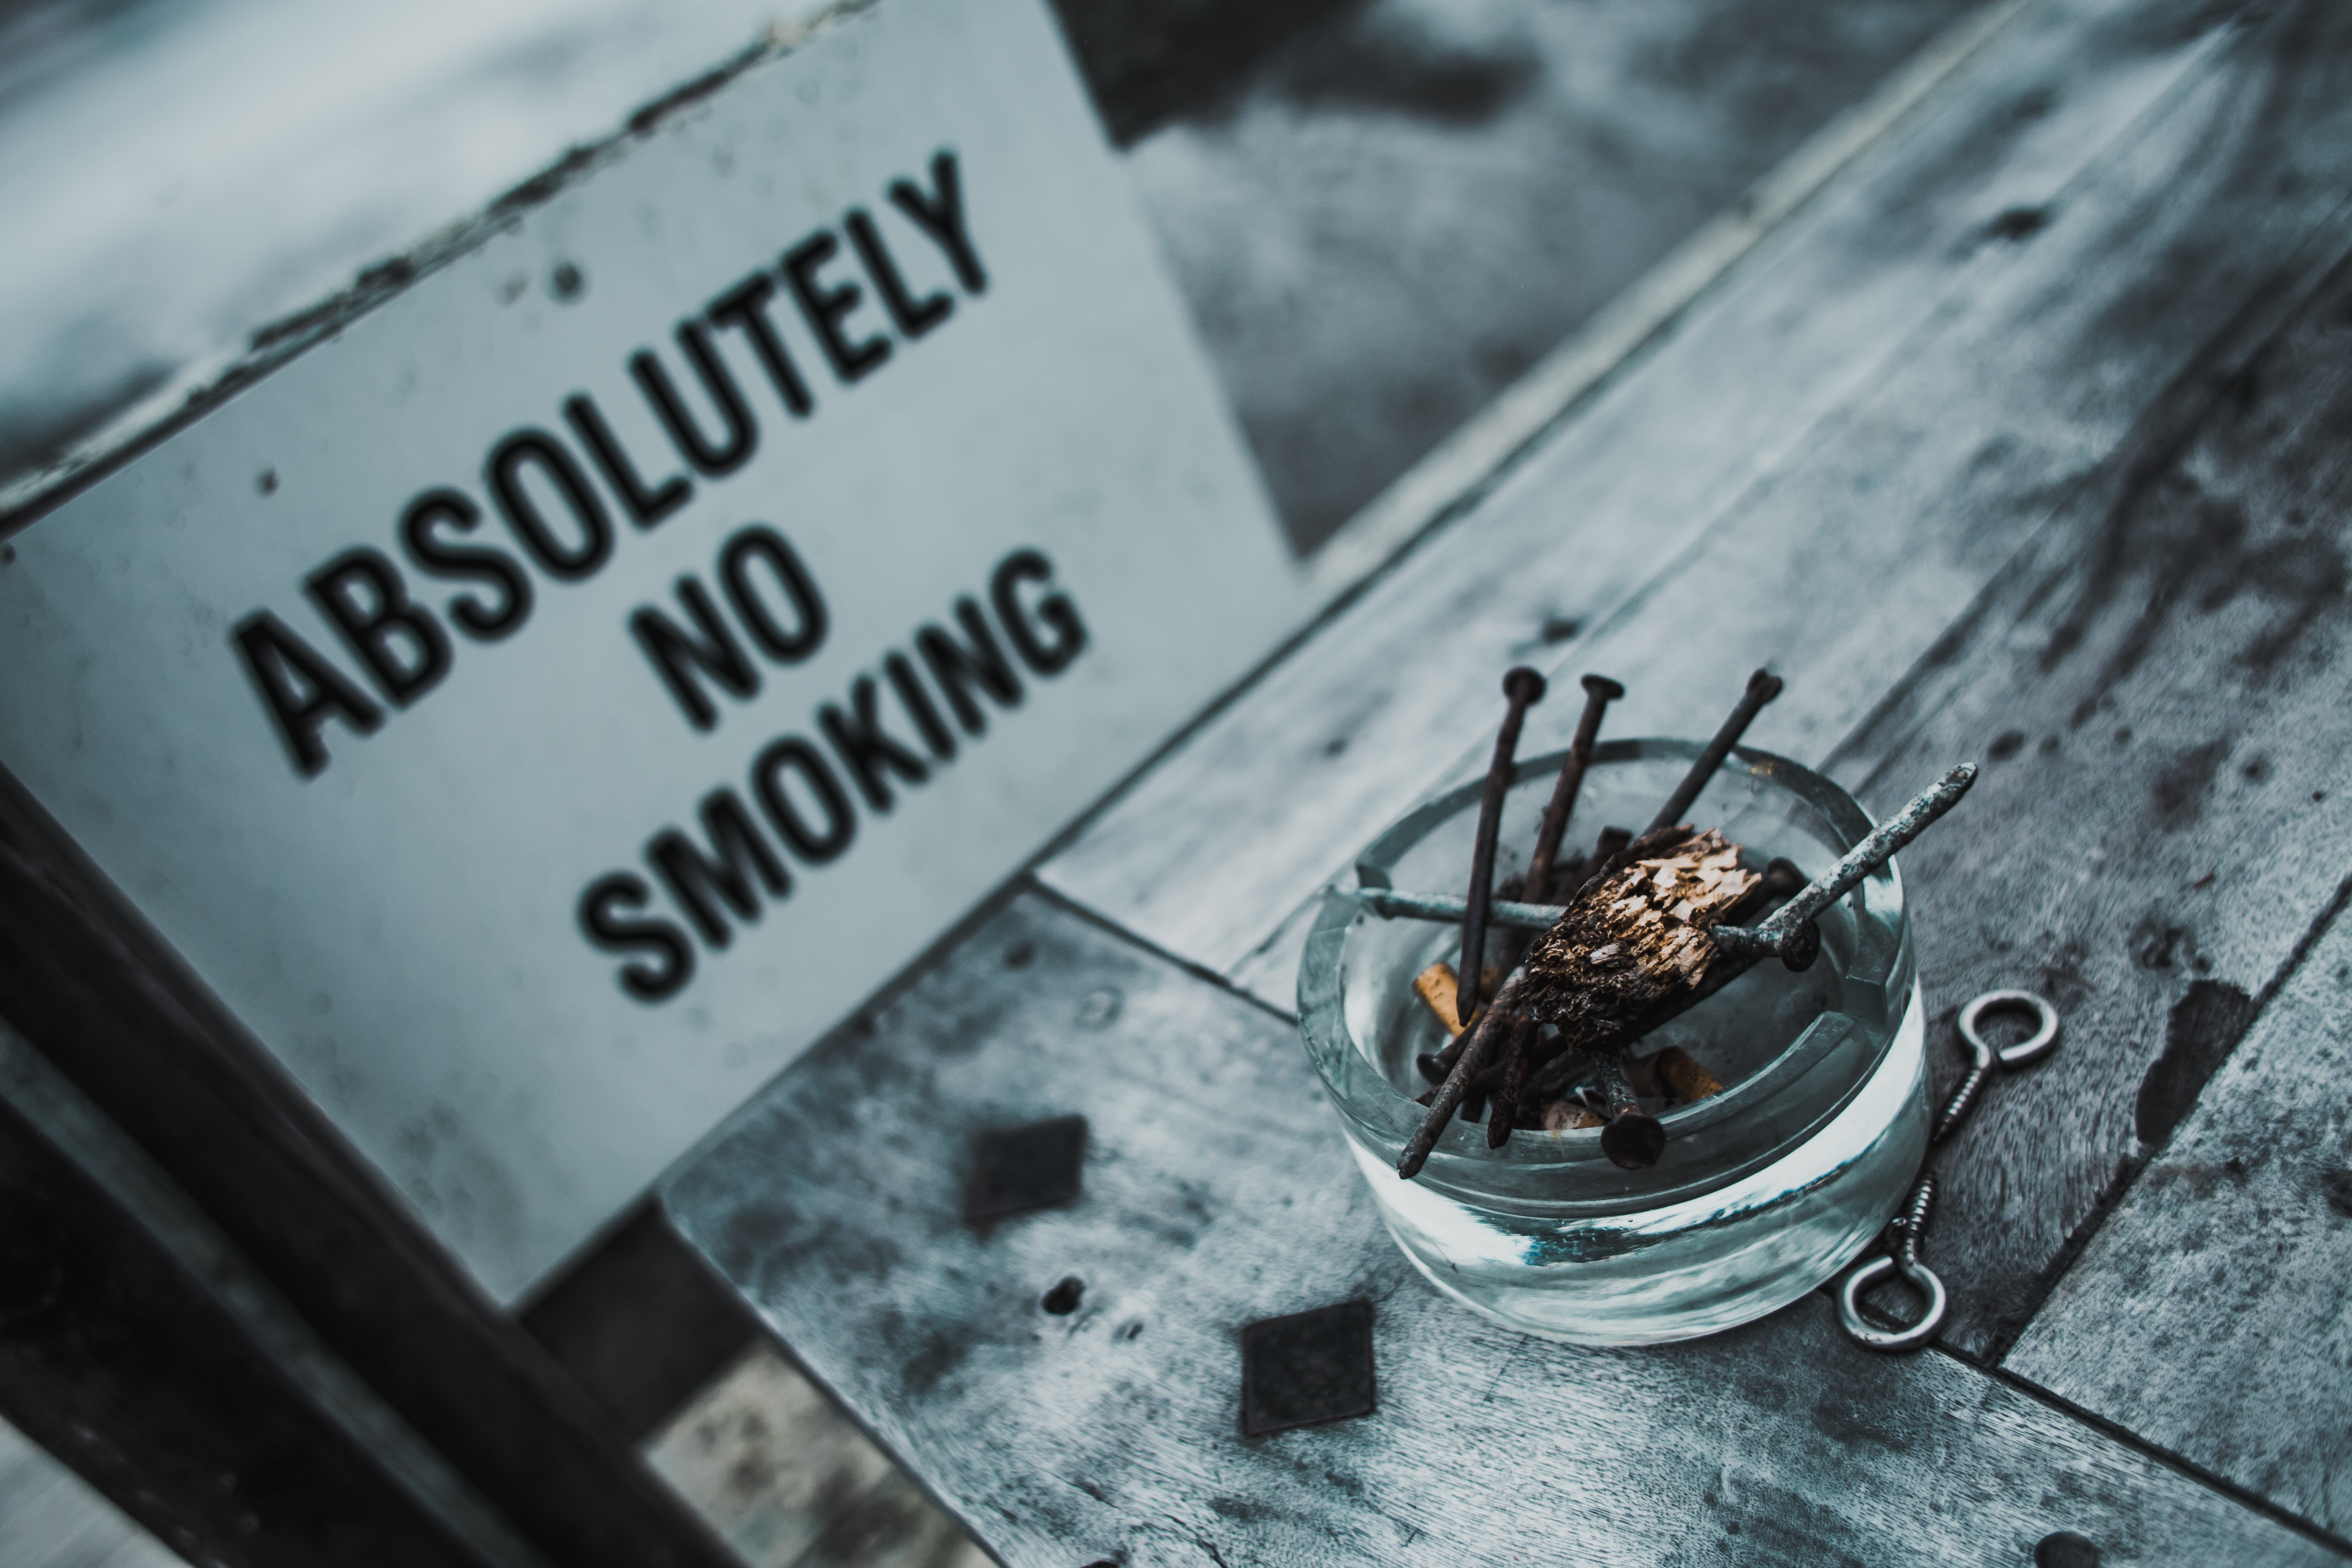 Ashtray with rusty nails by a No Smoking sign